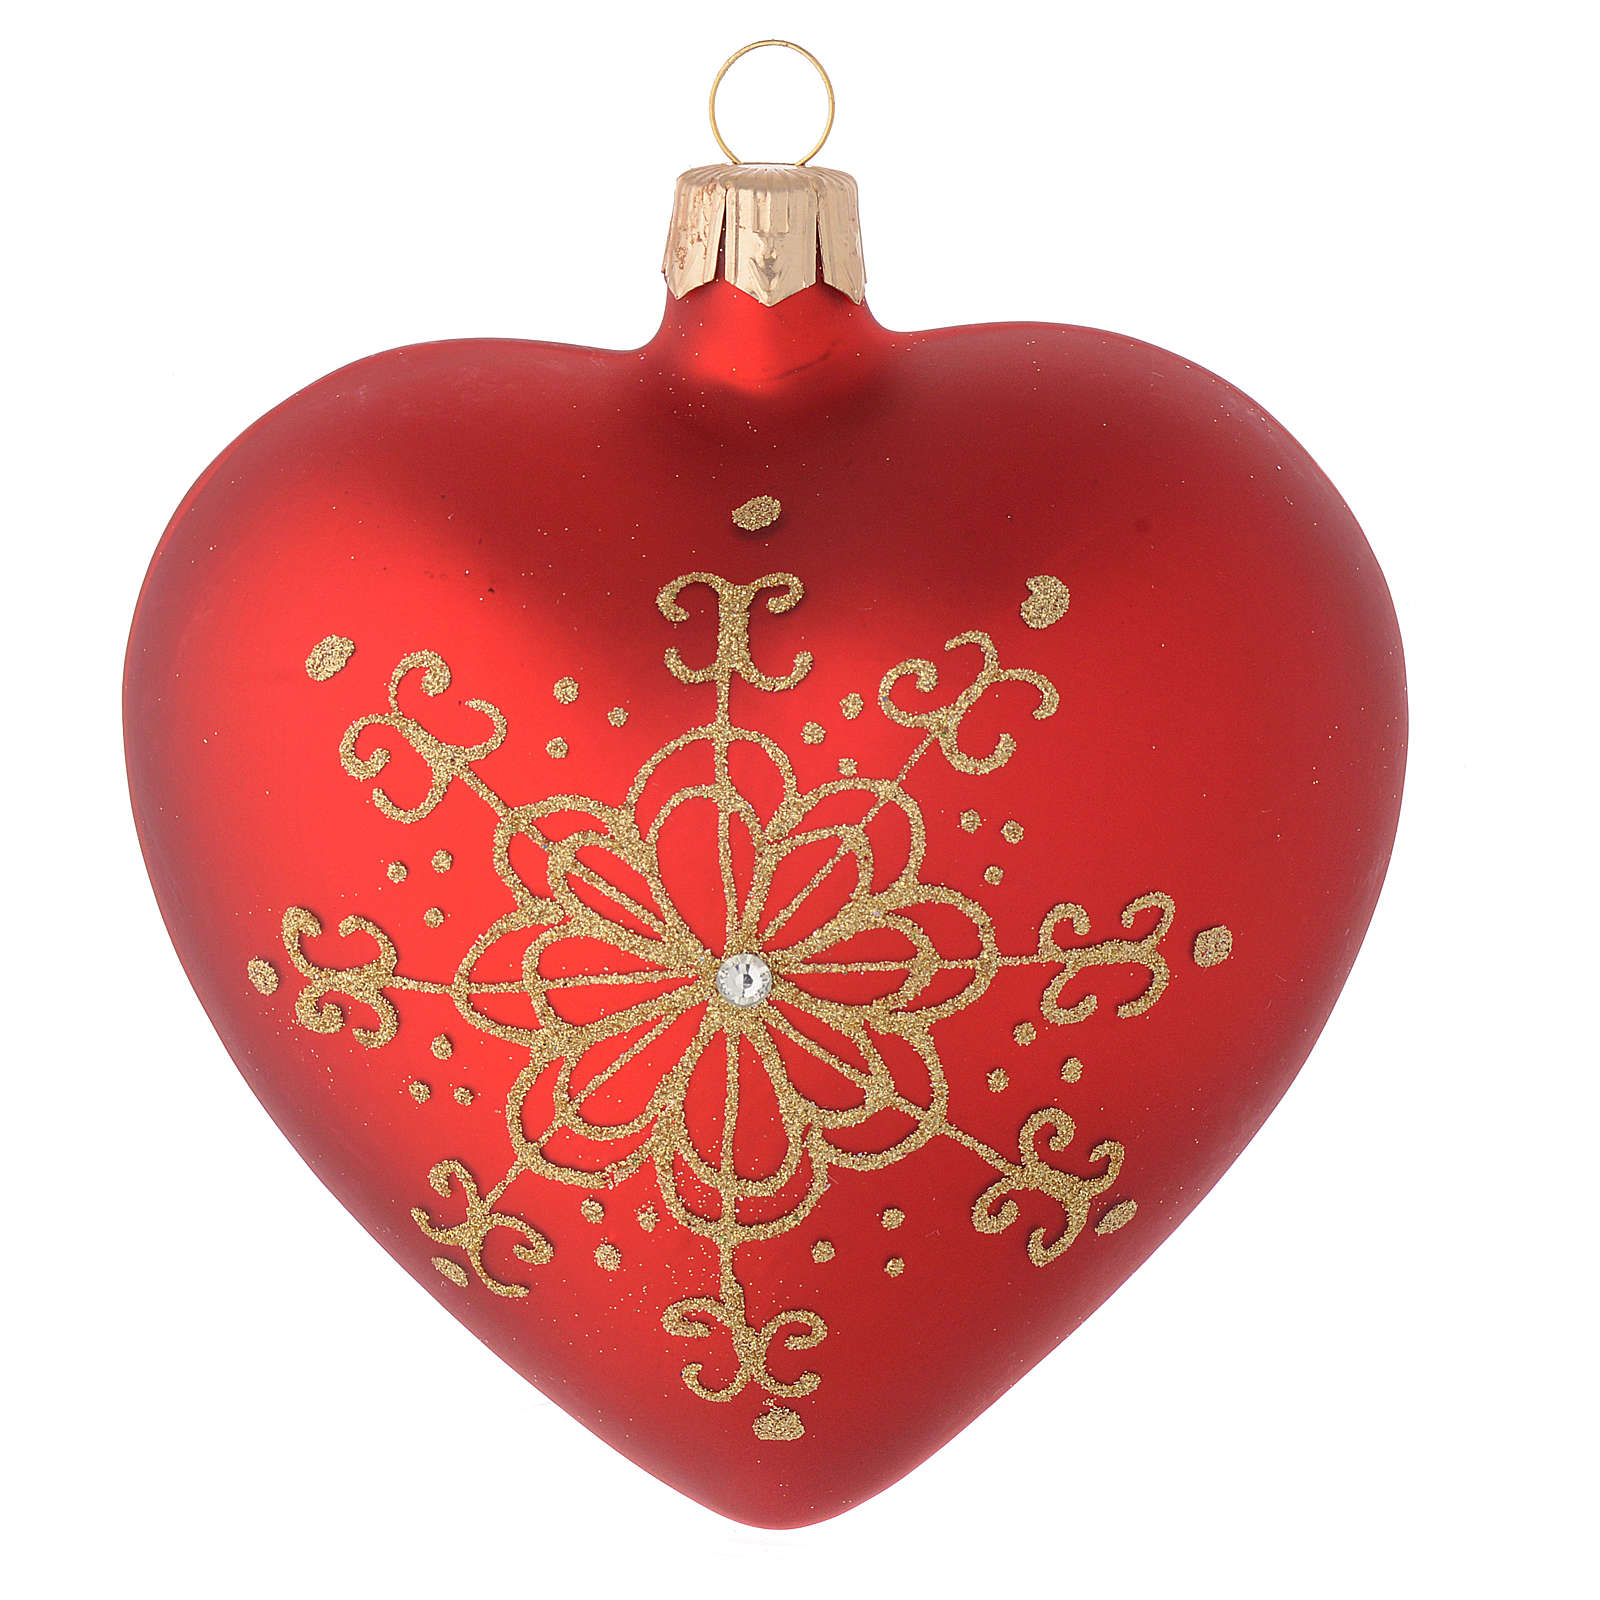 Heart Shaped Bauble in red blown glass with golden flower 100mm 4